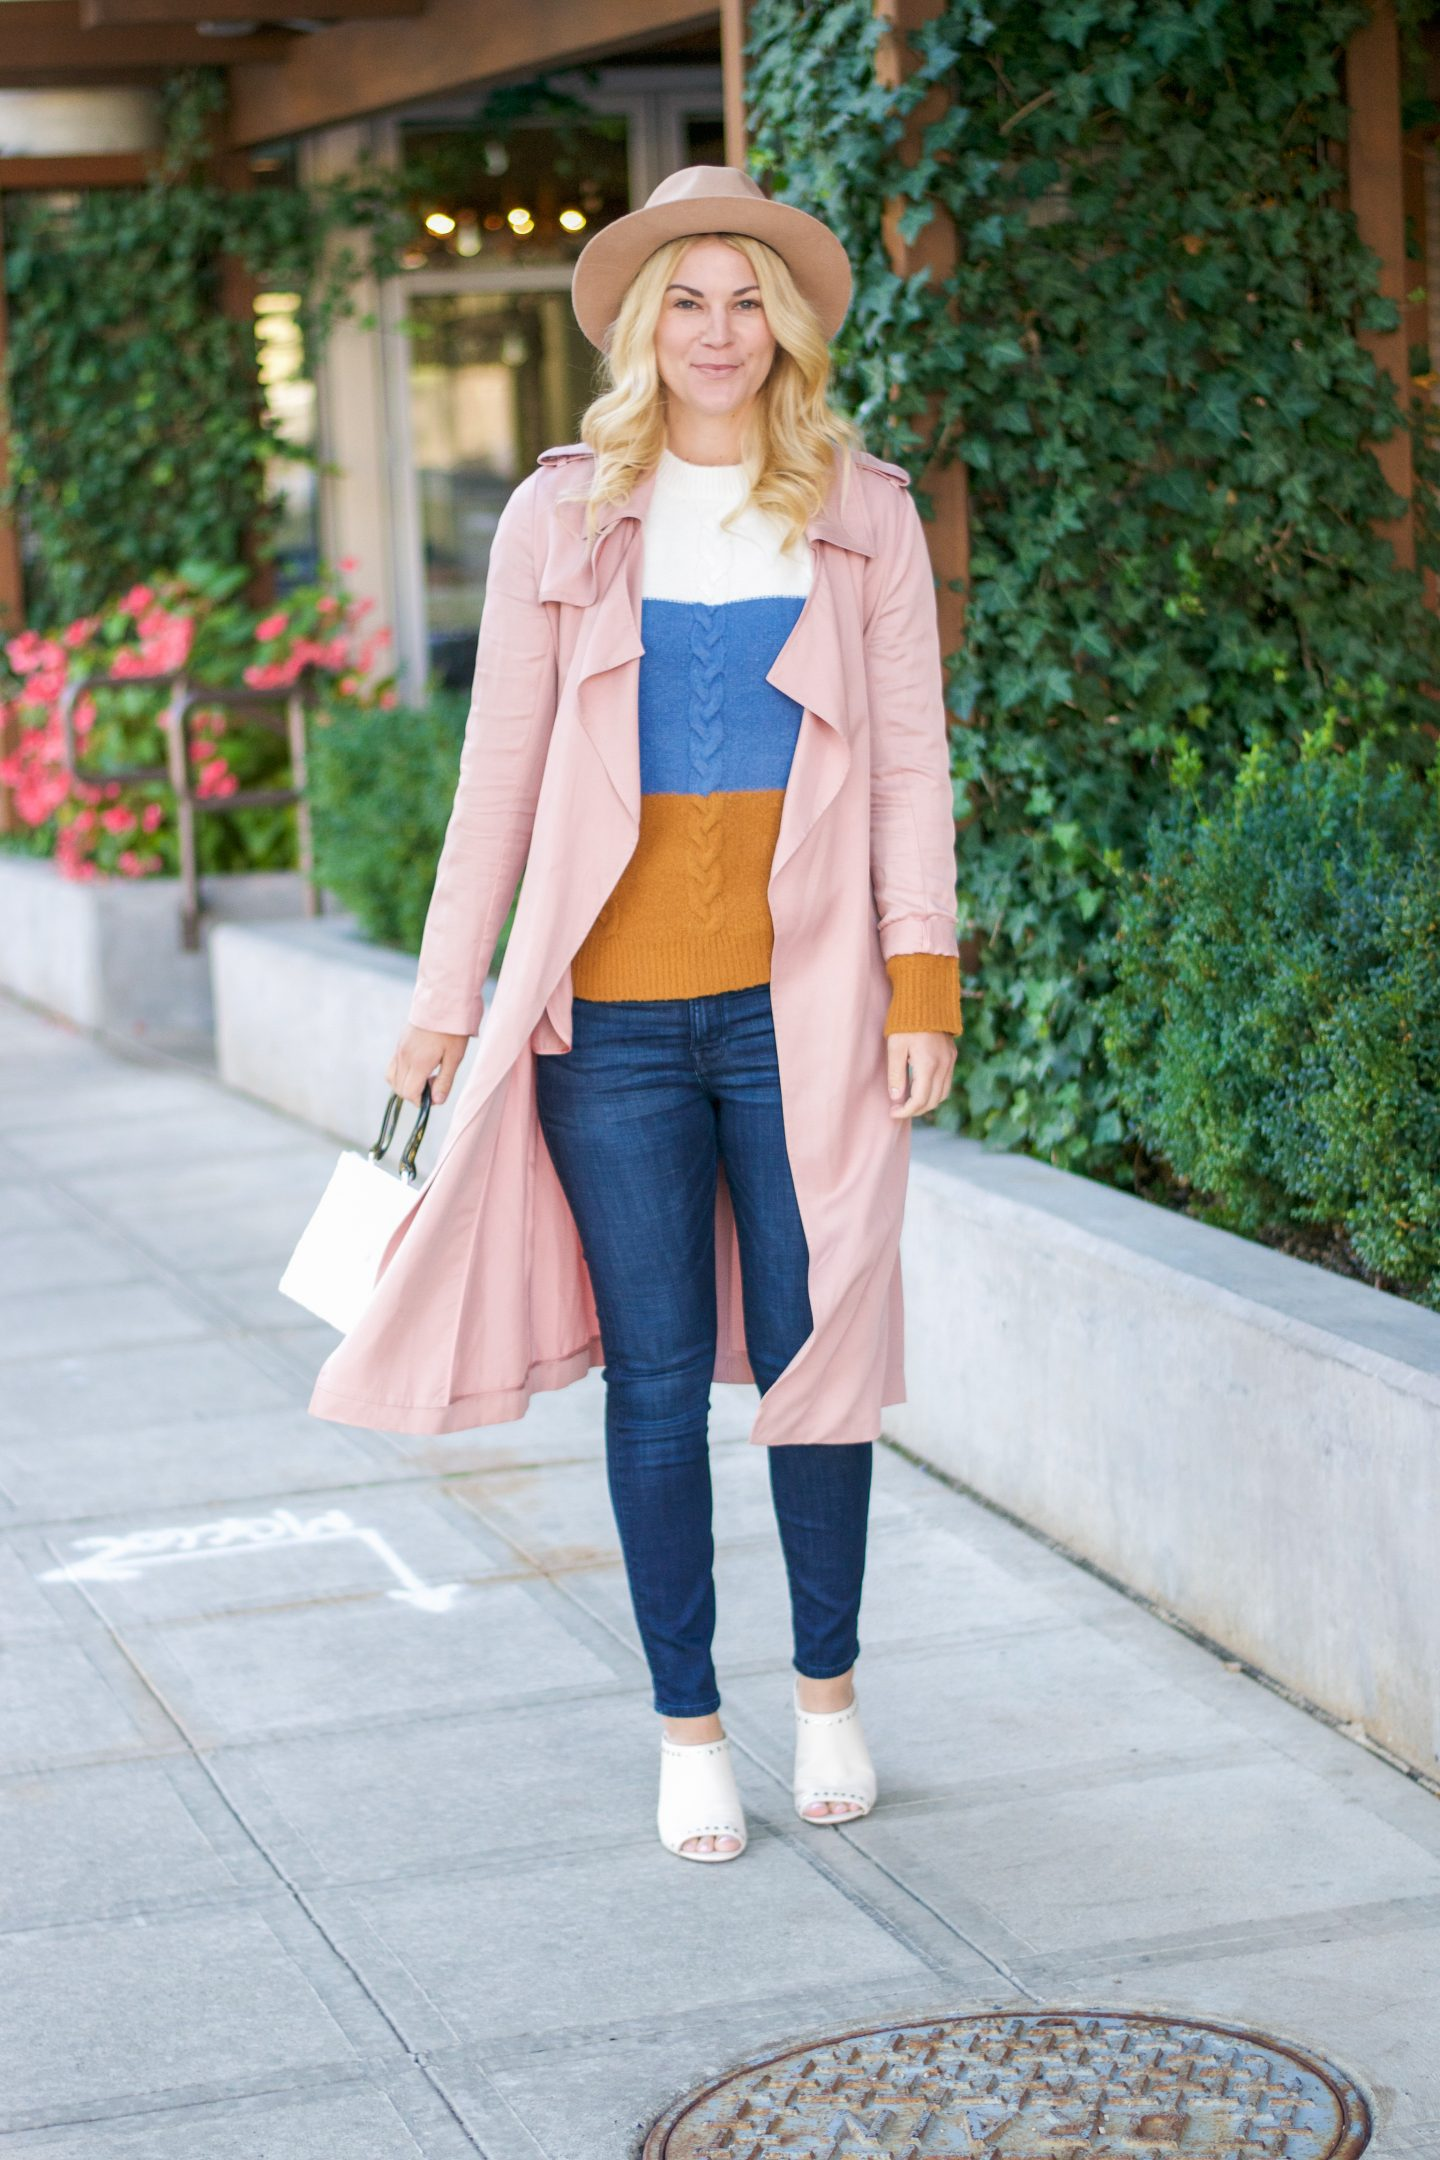 Fall Trench Coat & Cable Knit Sweater